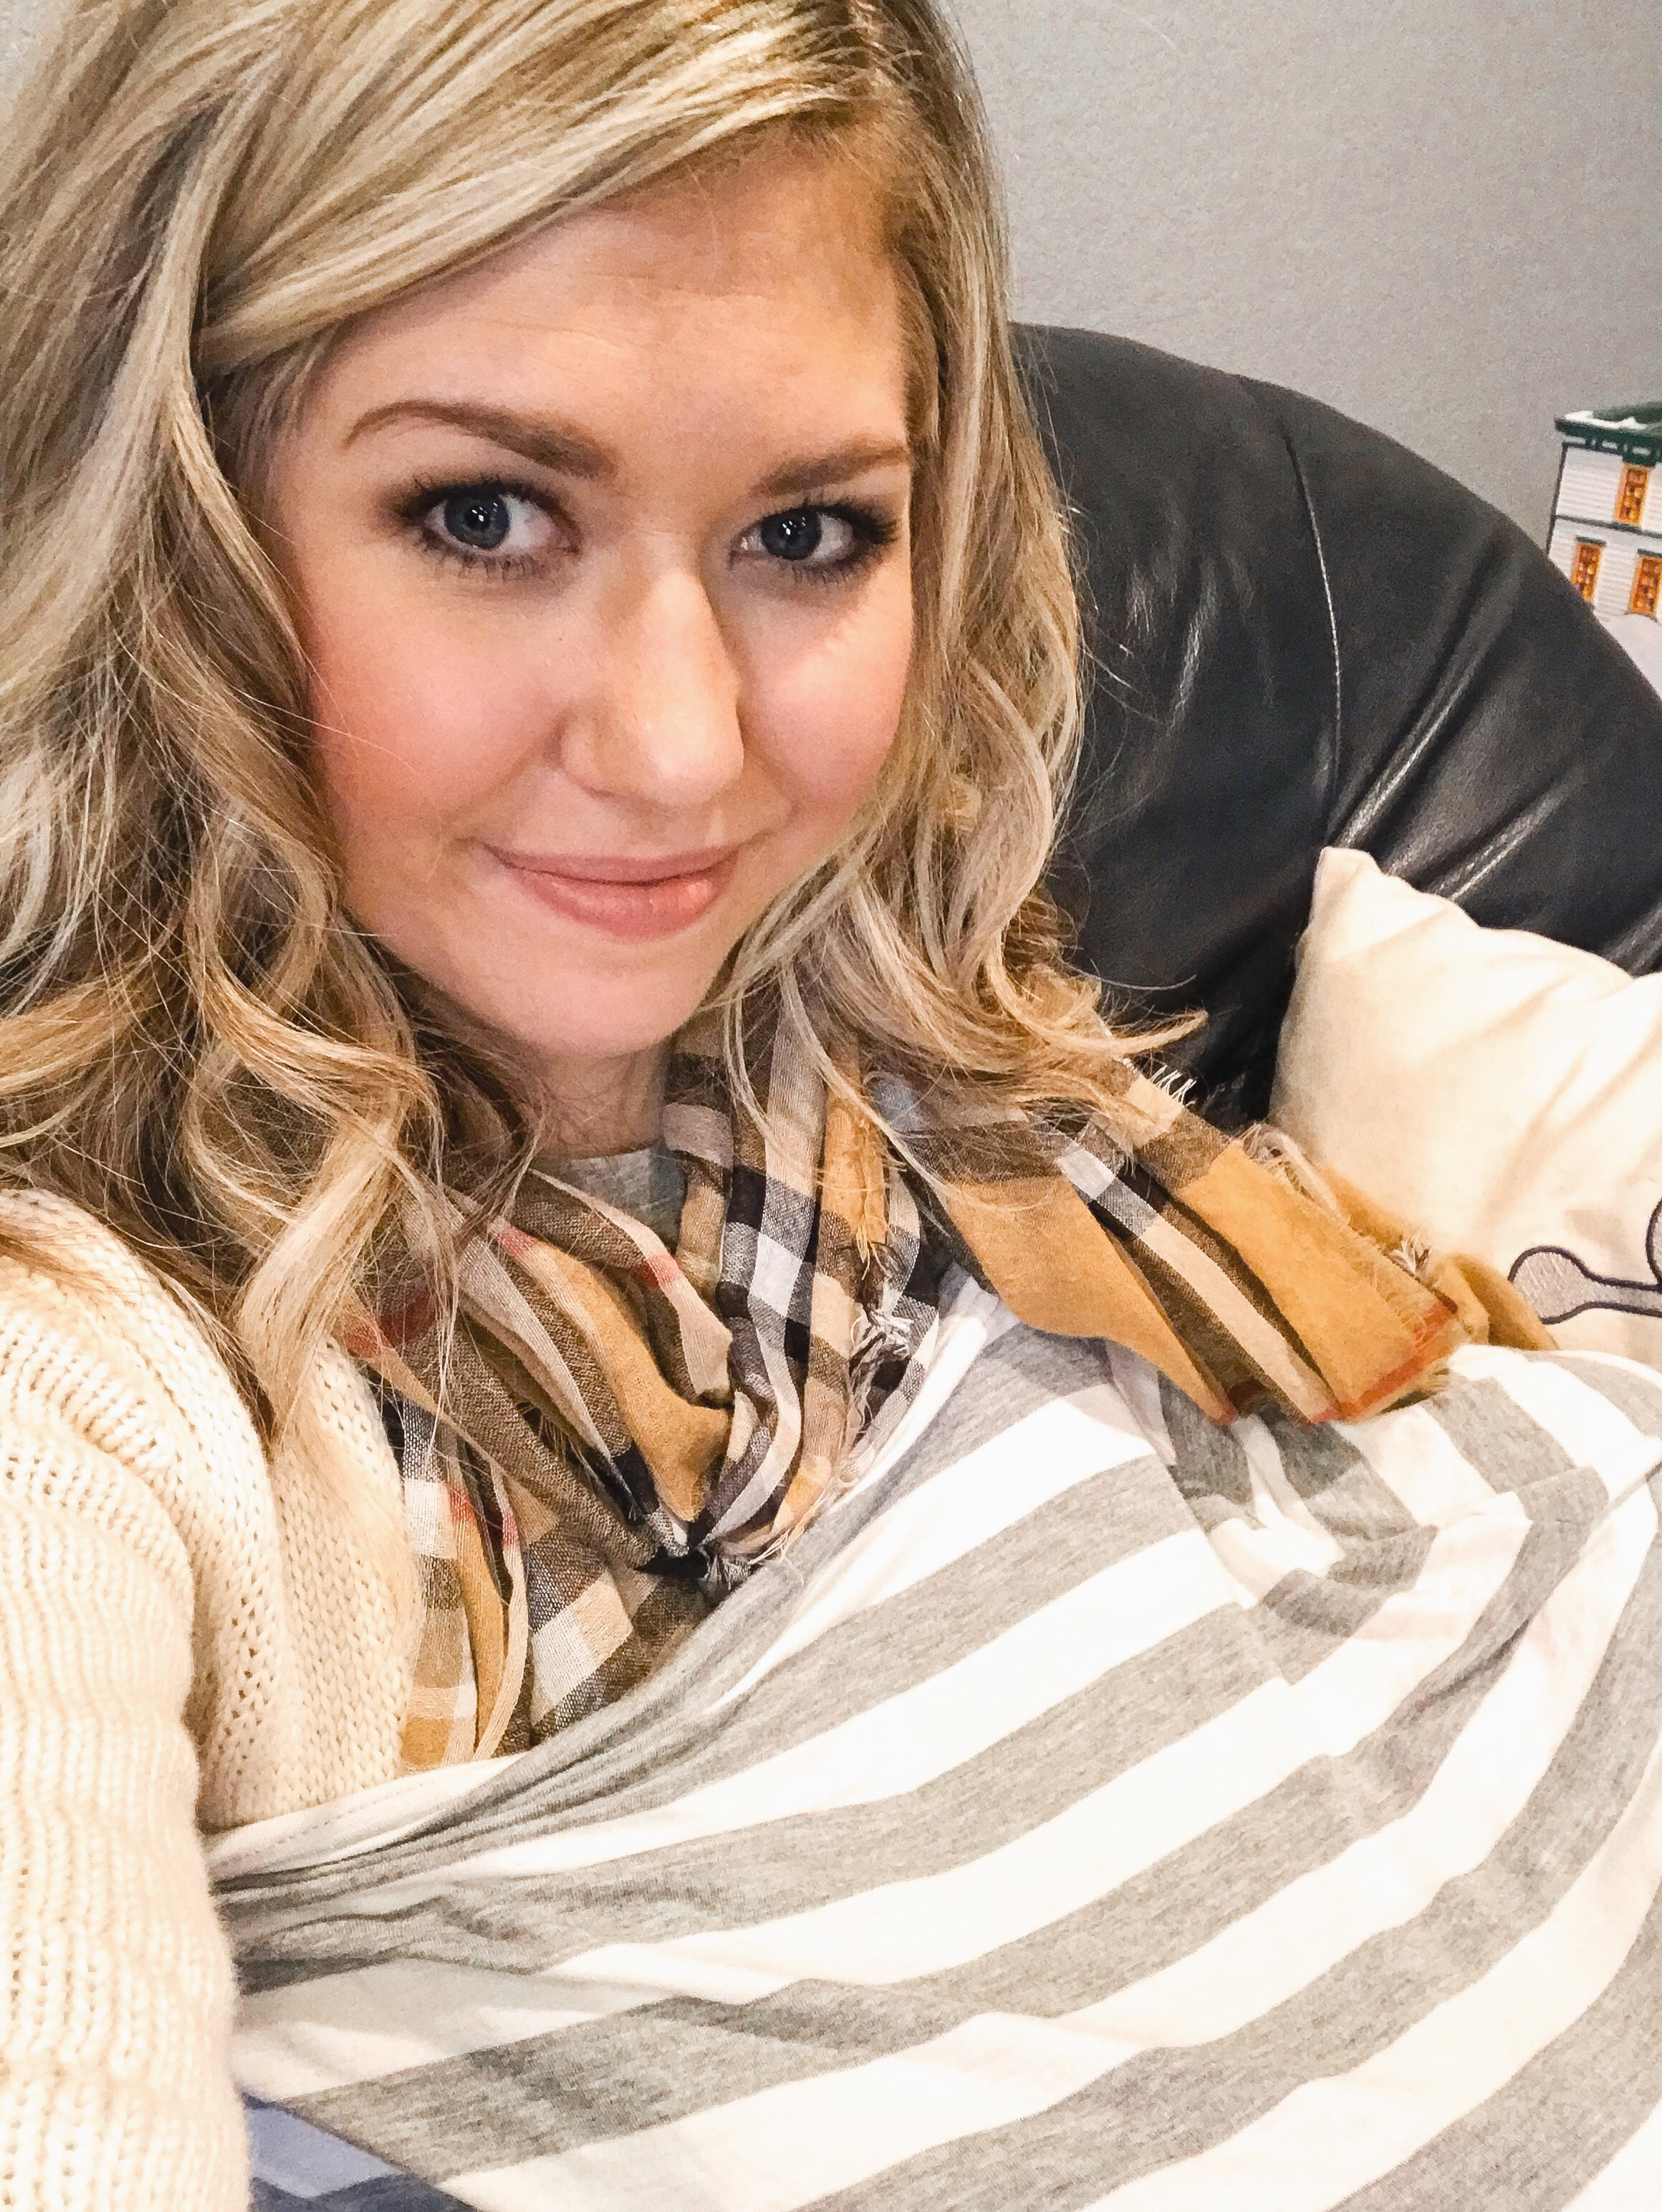 Taking a break from some Christmastime family fun to nurse my baby, a nursing cover always comes in handy for an easily distracted babe or curious kiddos.